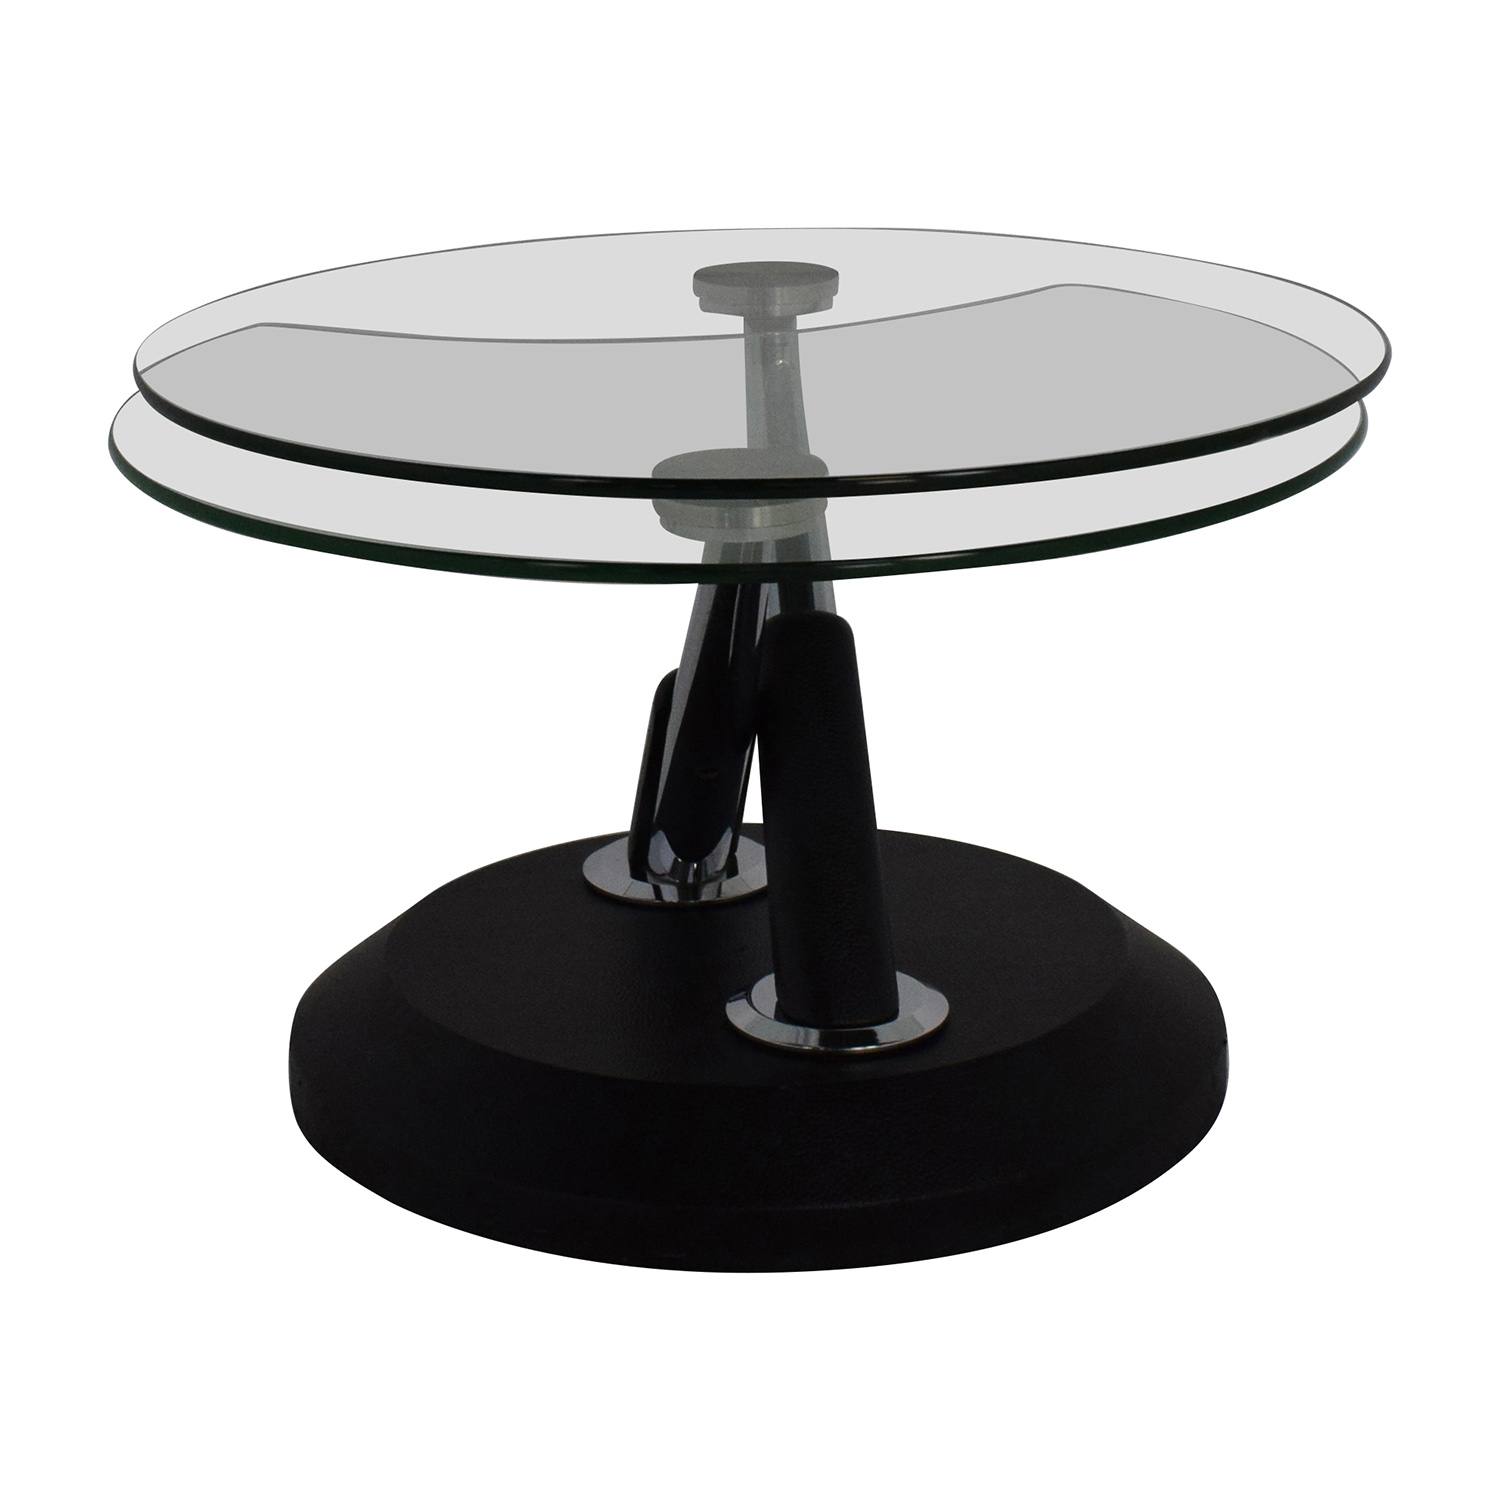 Glass Swivel Coffee Table.58 Off Raymour Flanigan Raymour Flanigan Modesto Glass Swivel Coffee Table Tables